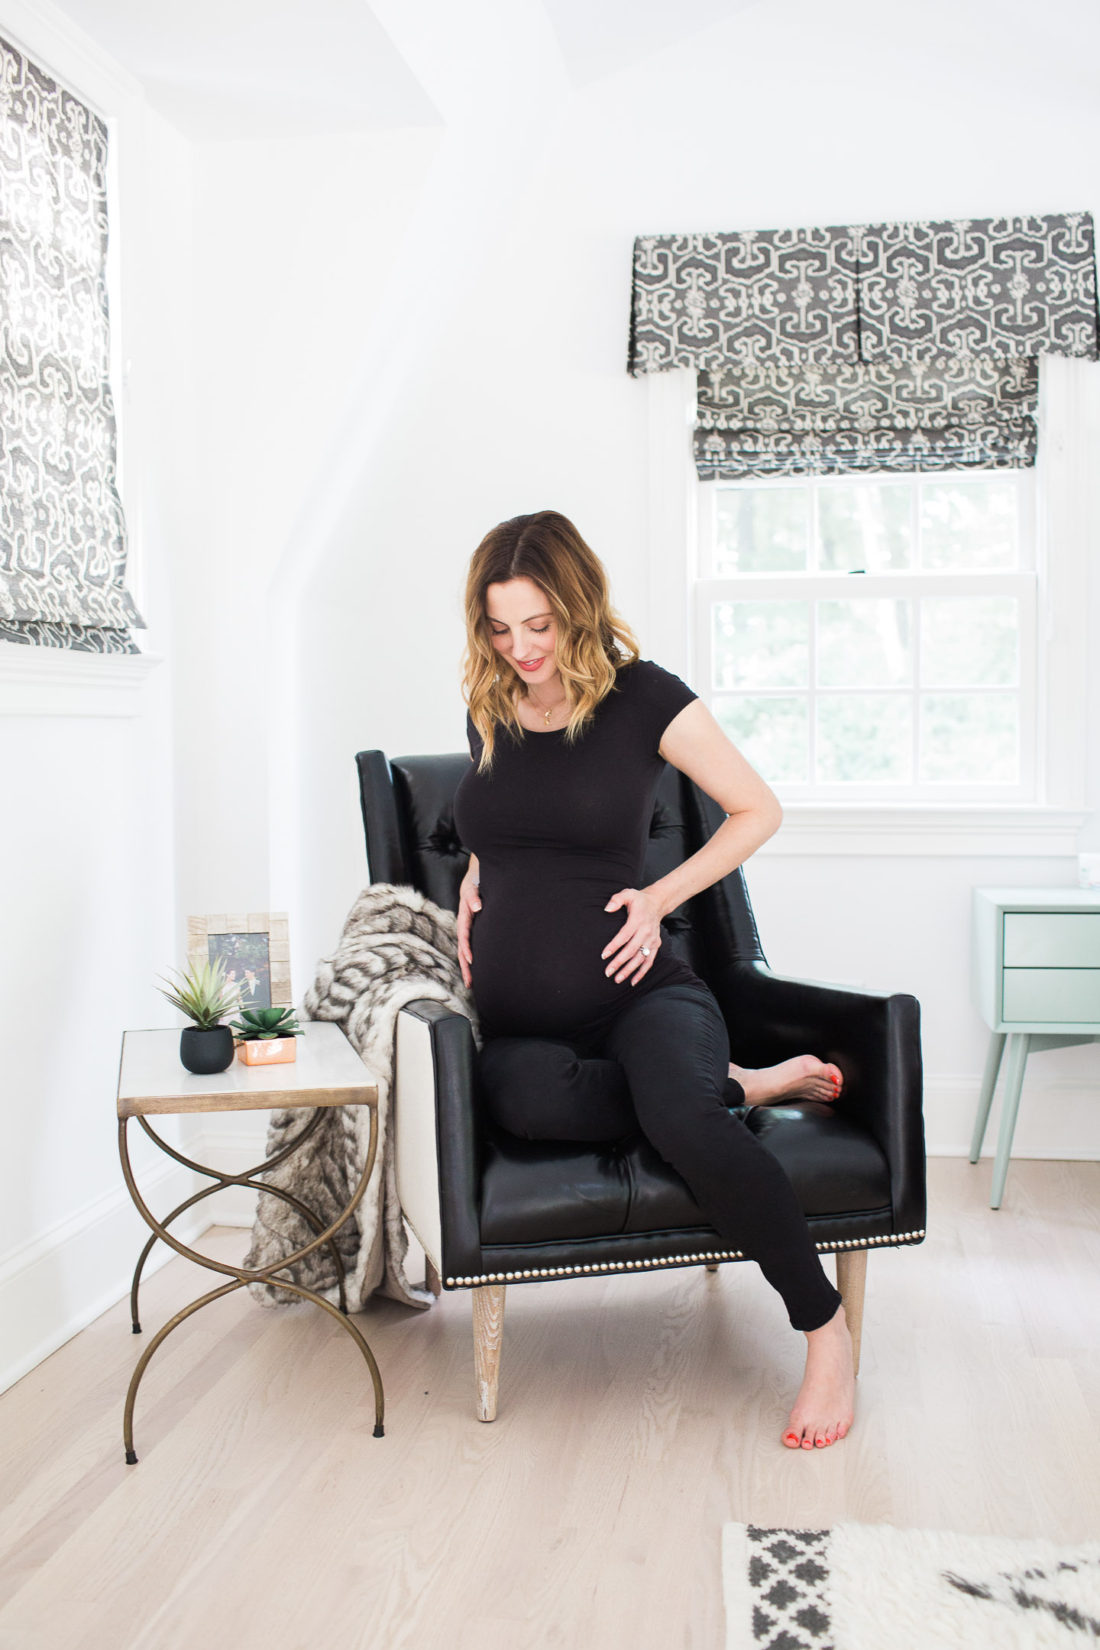 Eva Amurri Martino of lifestyle blog Happily Eva After cradling her 37 week bump while sitting in a black leather chair in her master bedroom next to a brass table and two succulents